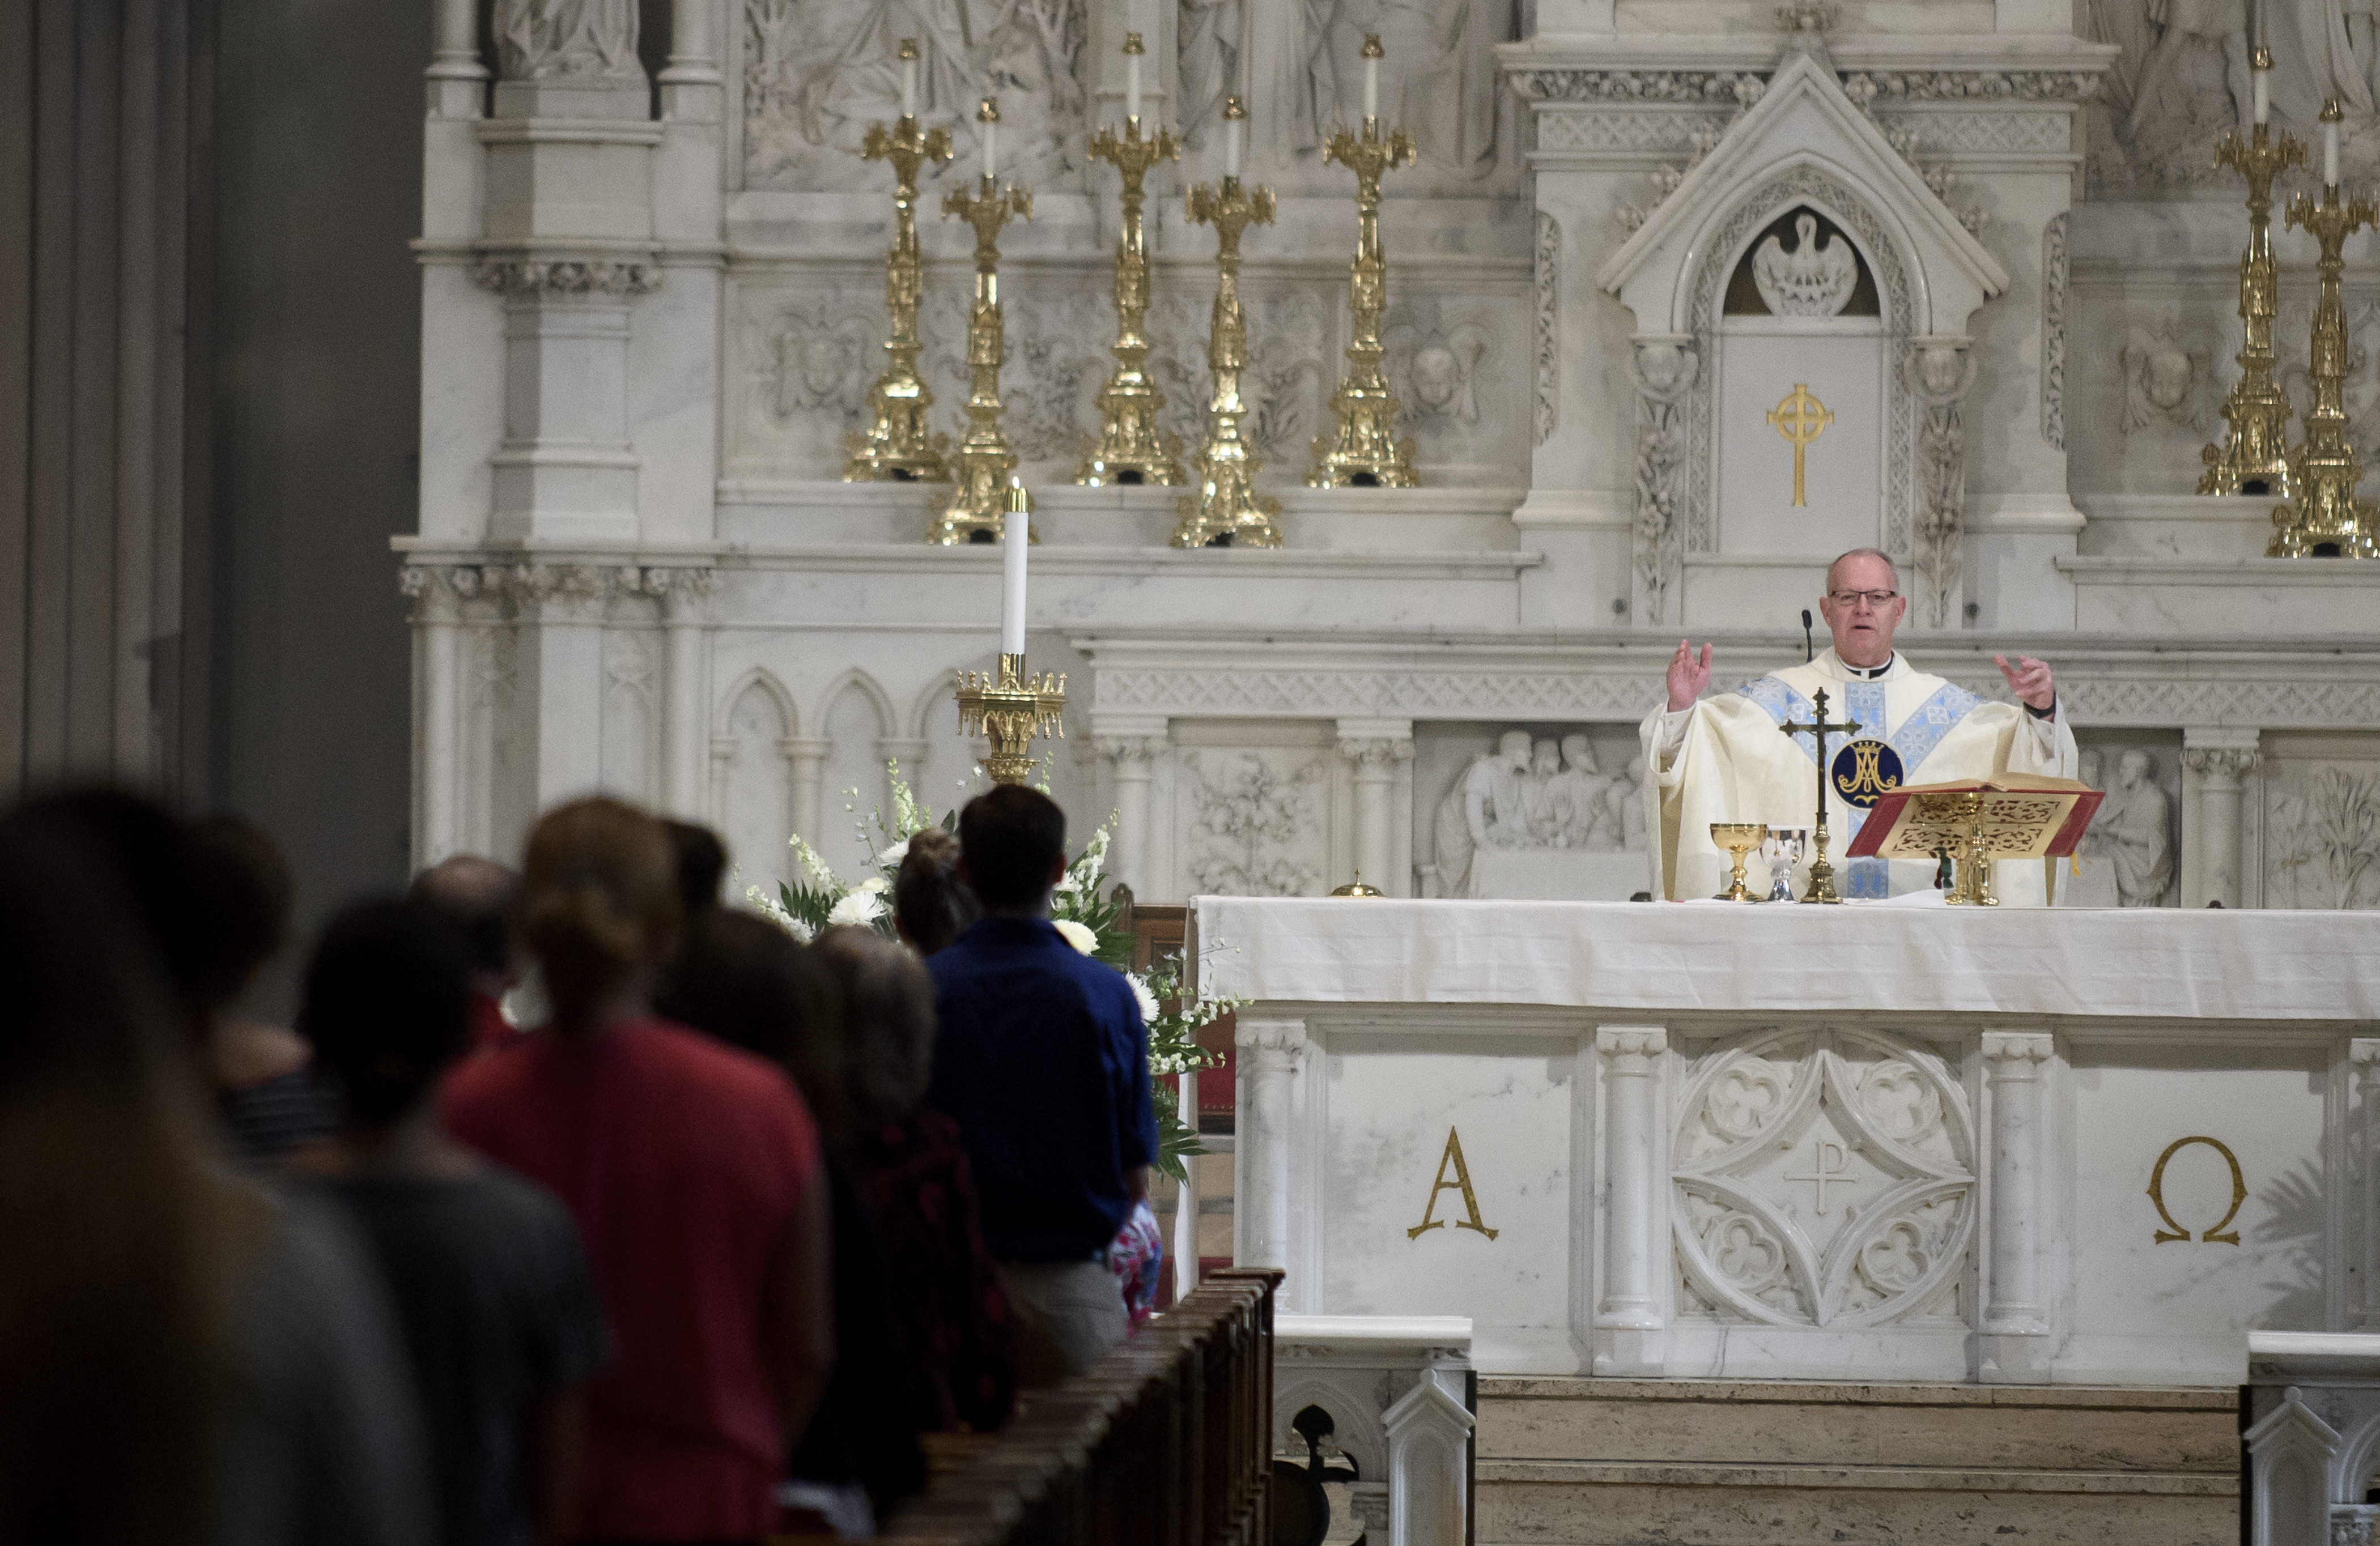 PITTSBURGH, PA - AUGUST 15: Father Kris Stubna speaks to parishioners during a mass to celebrate the Assumption of the Blessed Virgin Mary at St Paul Cathedral, the mother church of the Pittsburgh Diocese on August 15, 2018 in Pittsburgh, Pennsylvania. The Pittsburgh Diocese was rocked by revelations of abuse by priests the day before on August 14, 2018.(Photo by Jeff Swensen/Getty Images)